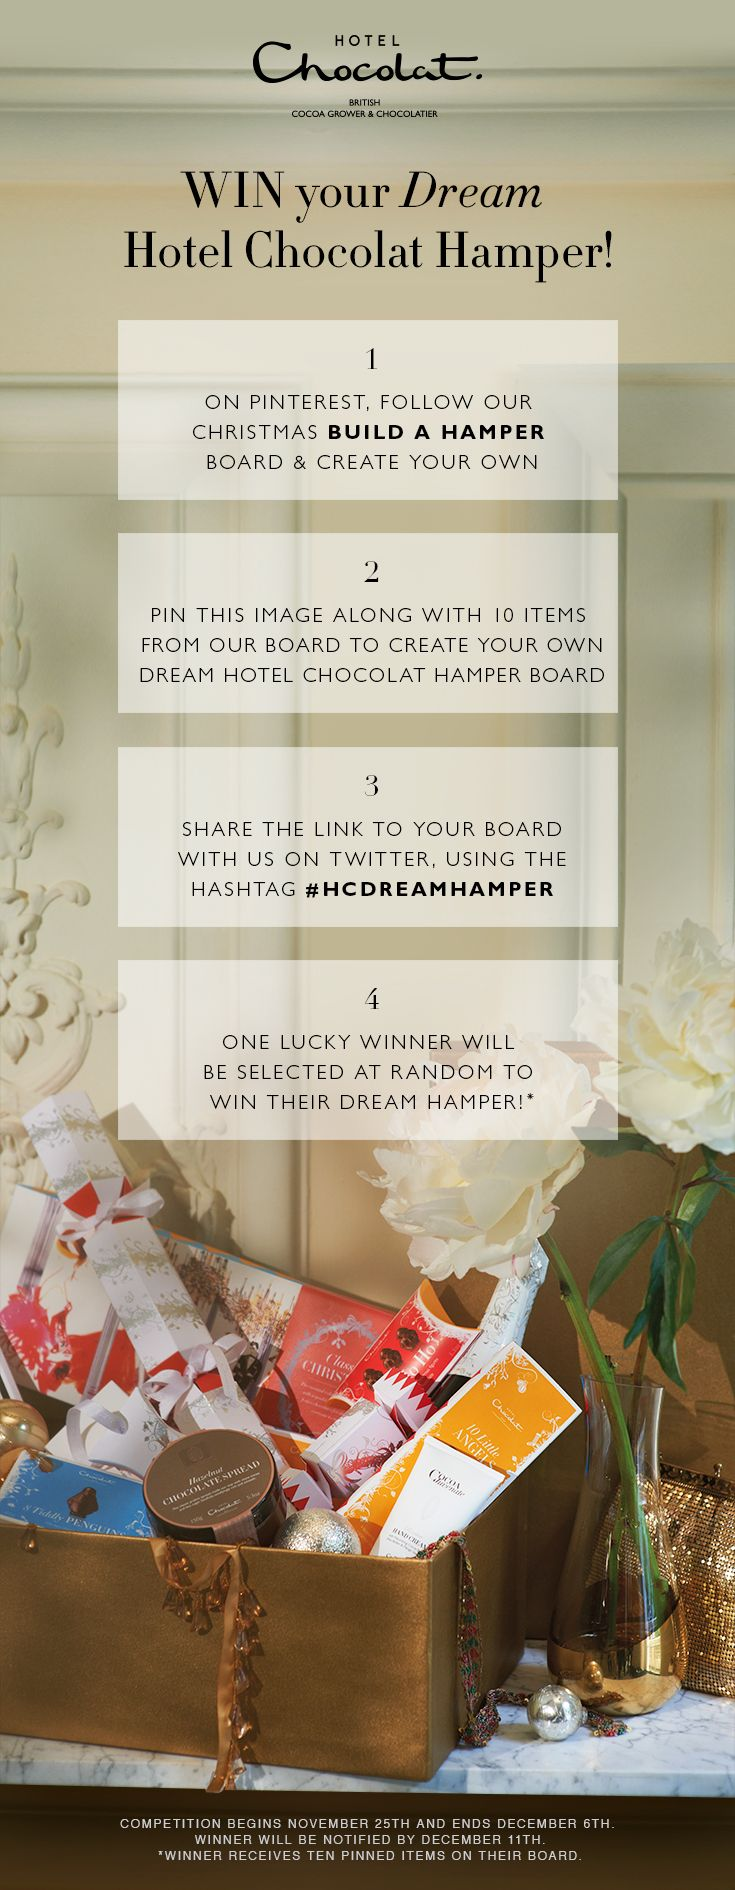 PIN IT TO WIN IT! Enter to win your dream luxury  chocolate hamper for Christmas from #hotelchocolat. #hcdreamhamper #competition